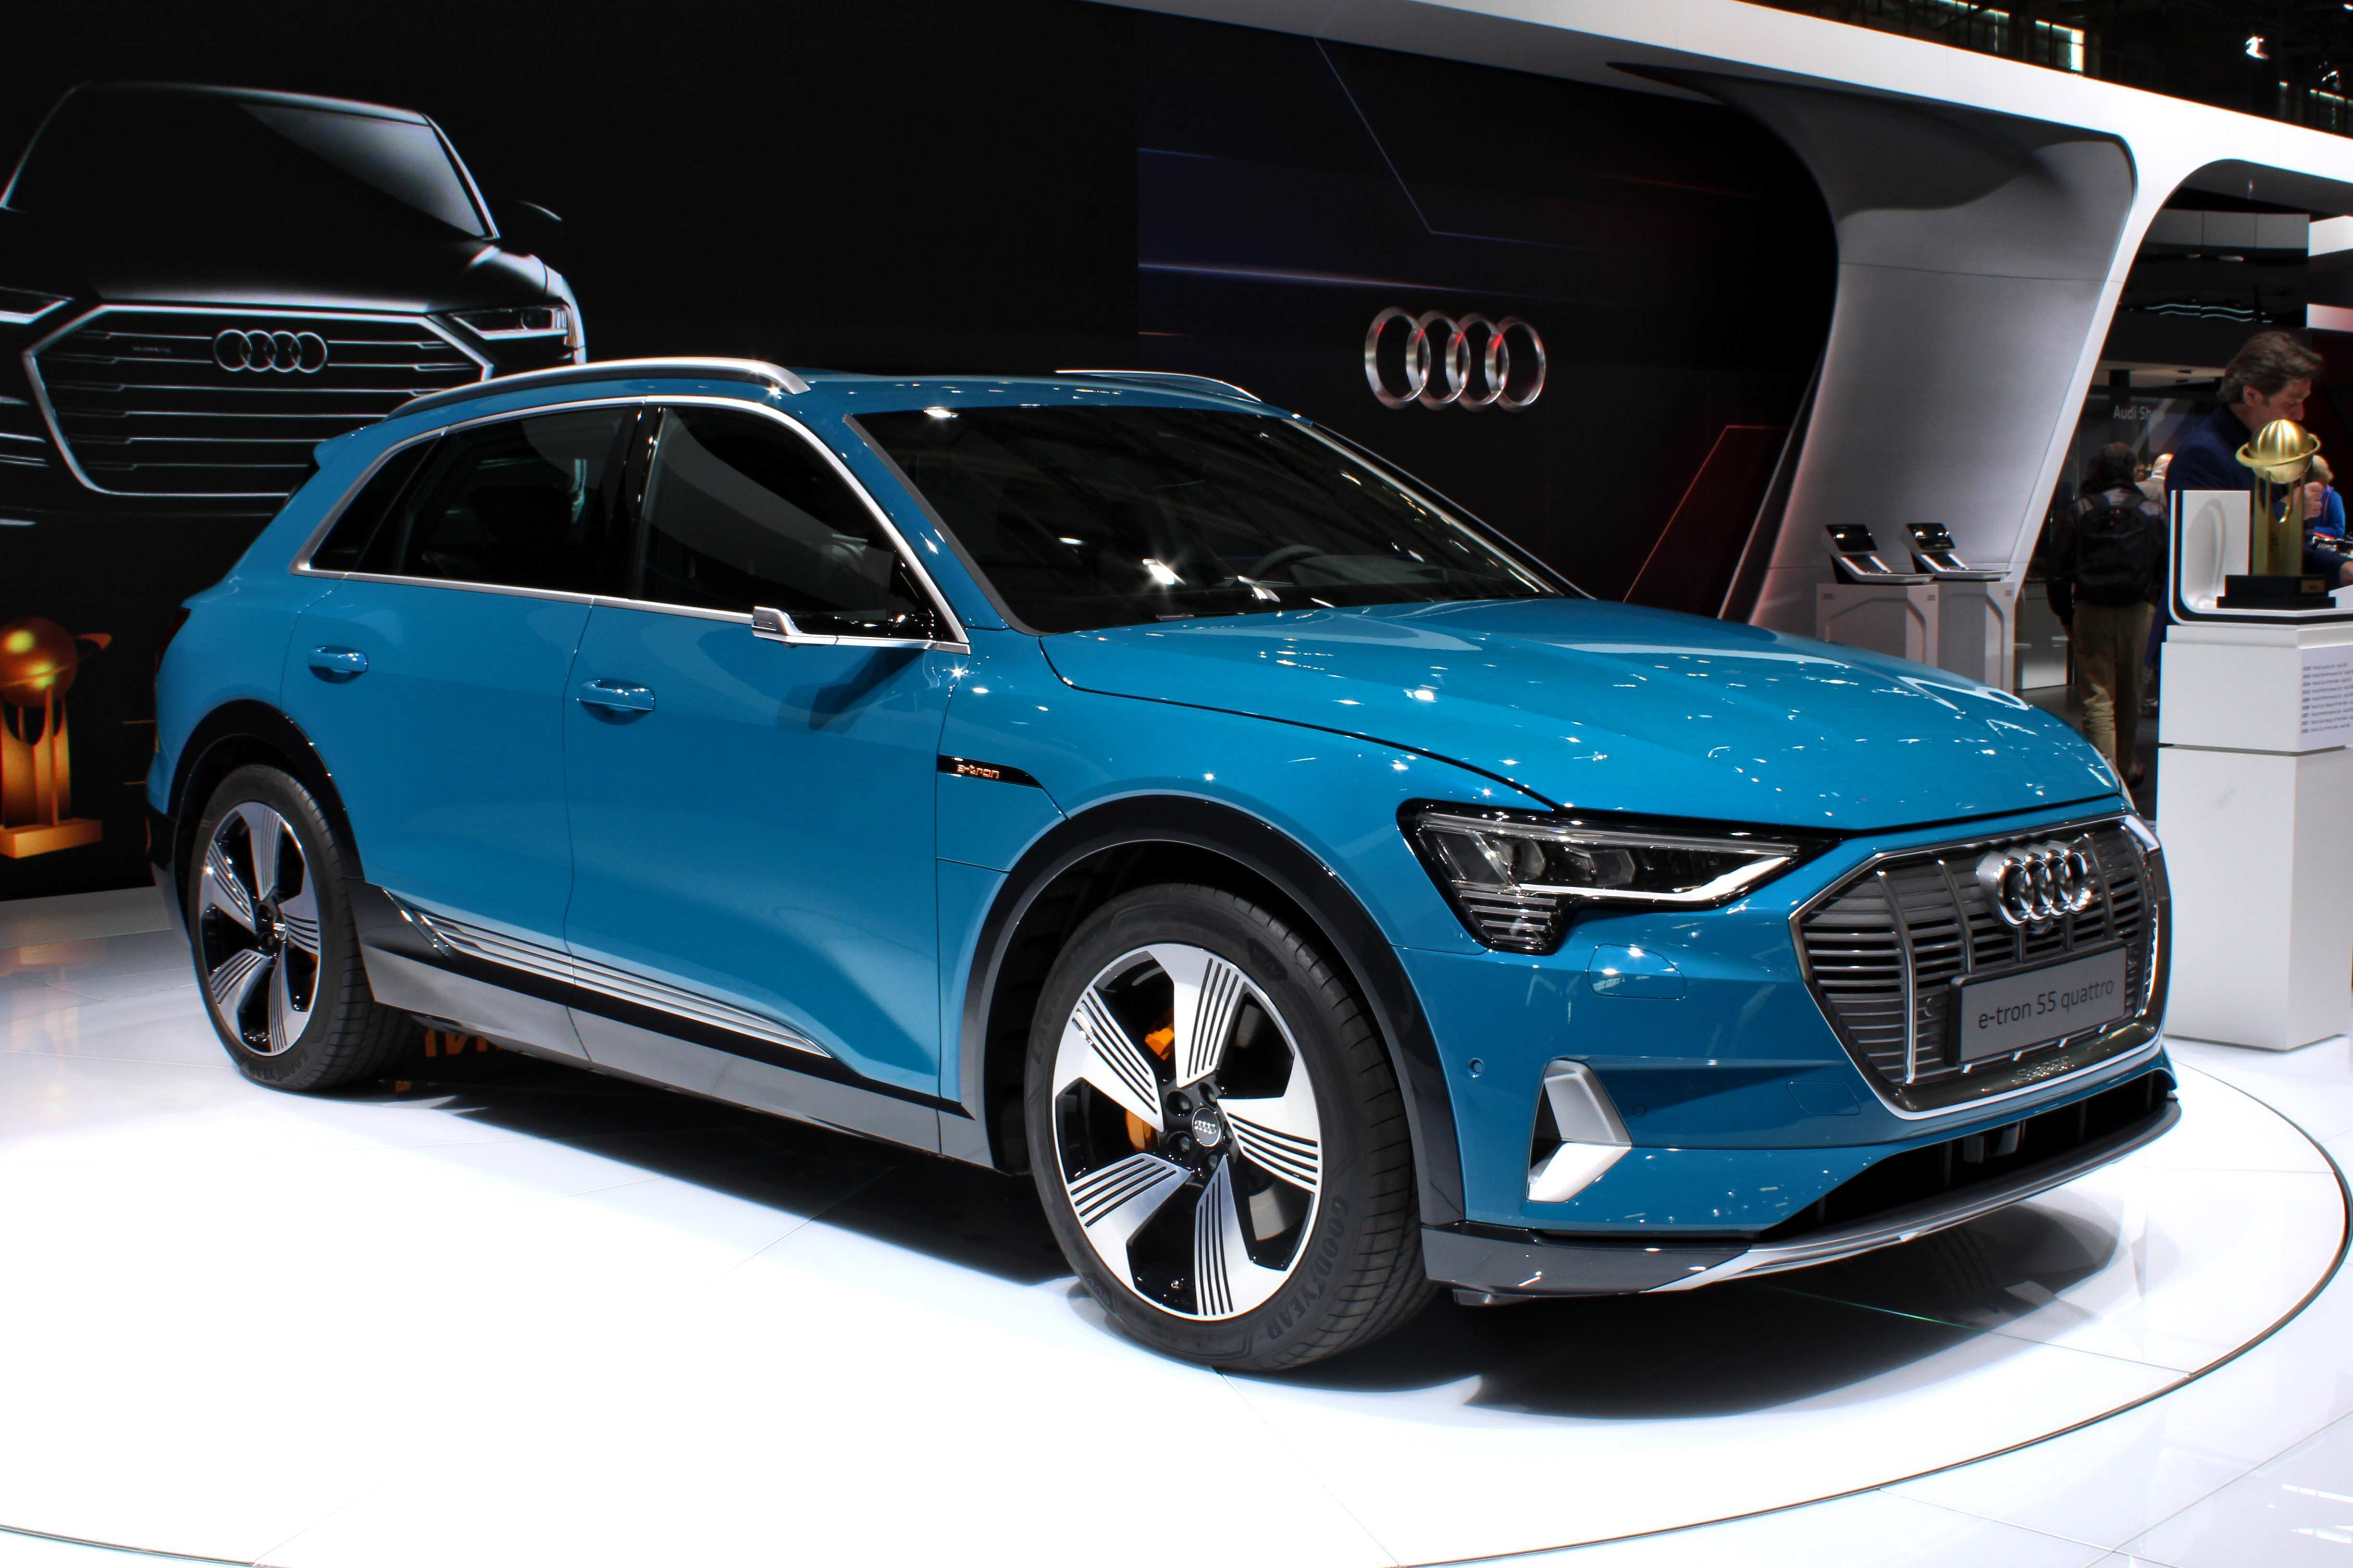 35 All New 2019 Audi E Tron Quattro Cost Concept